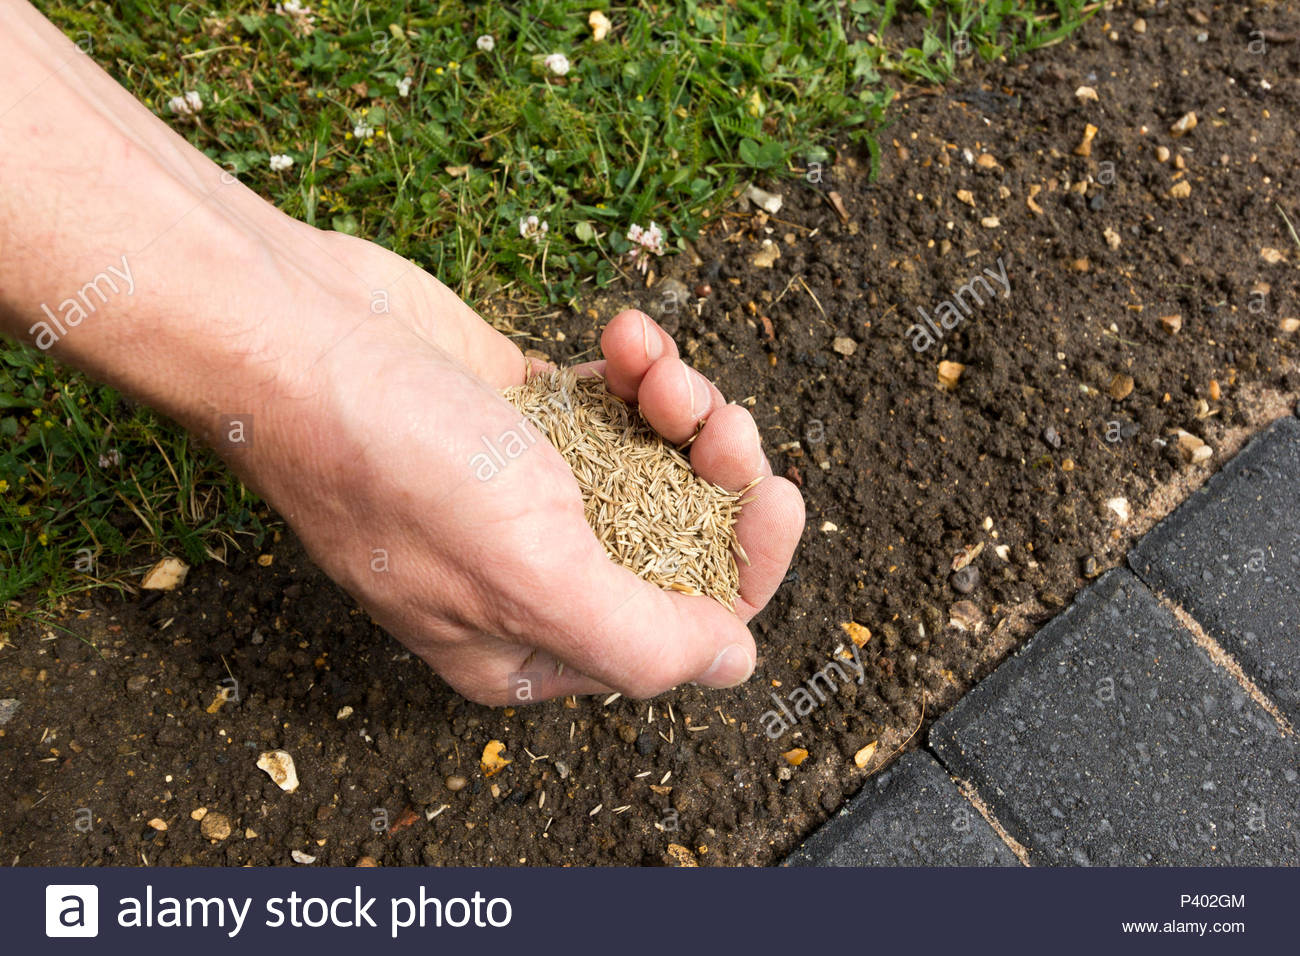 Close up of person with grass seed in their hand ready for sowing - Stock Image